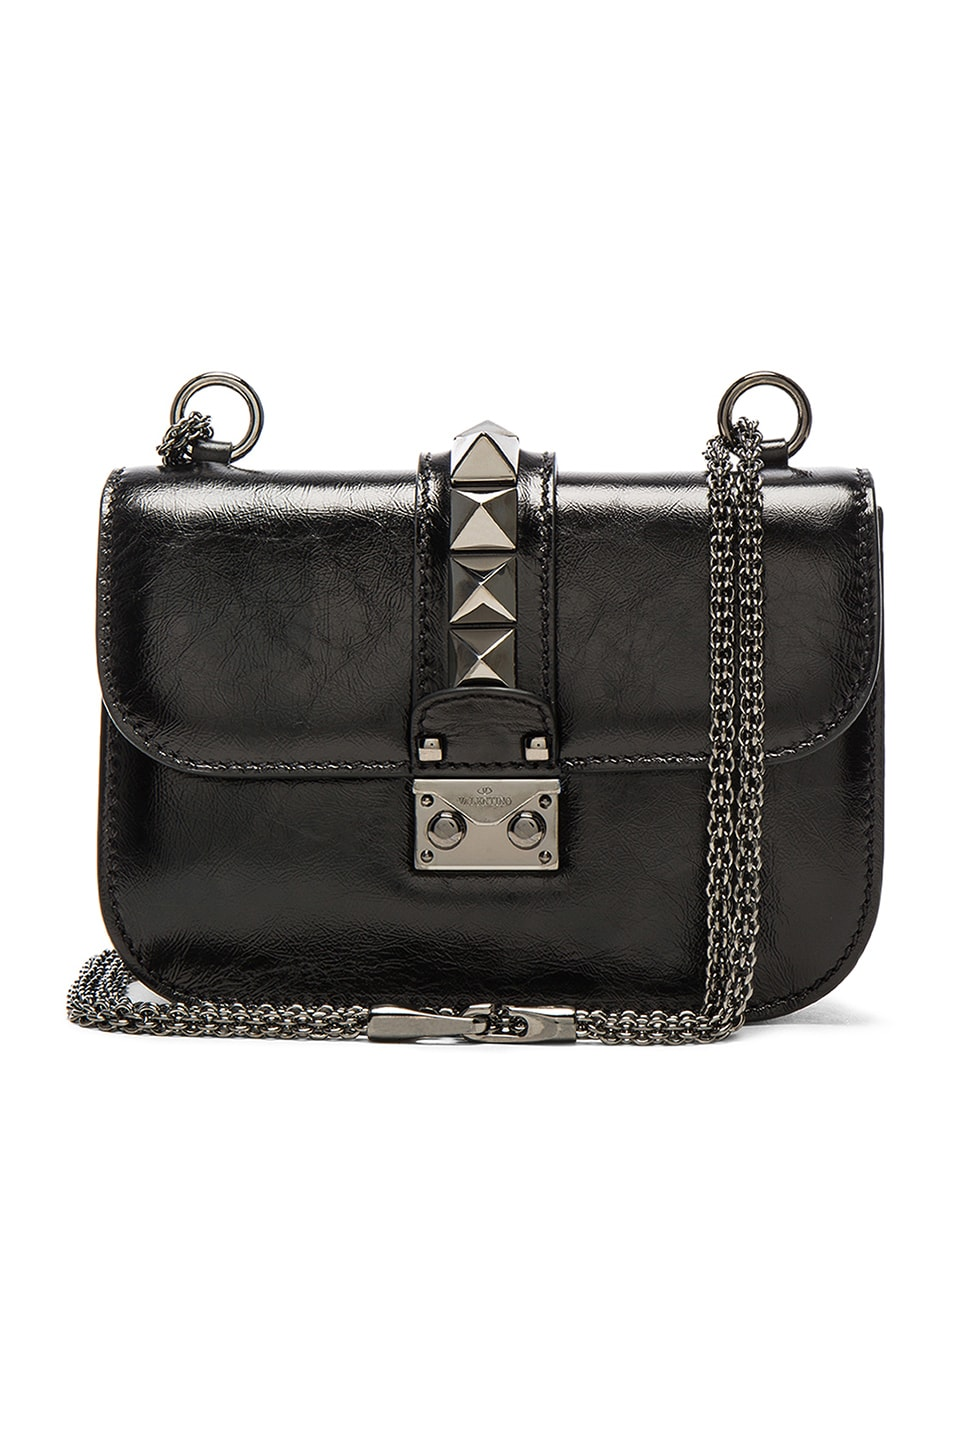 Image 1 of Valentino Noir Small Lock Shoulder Bag in Black